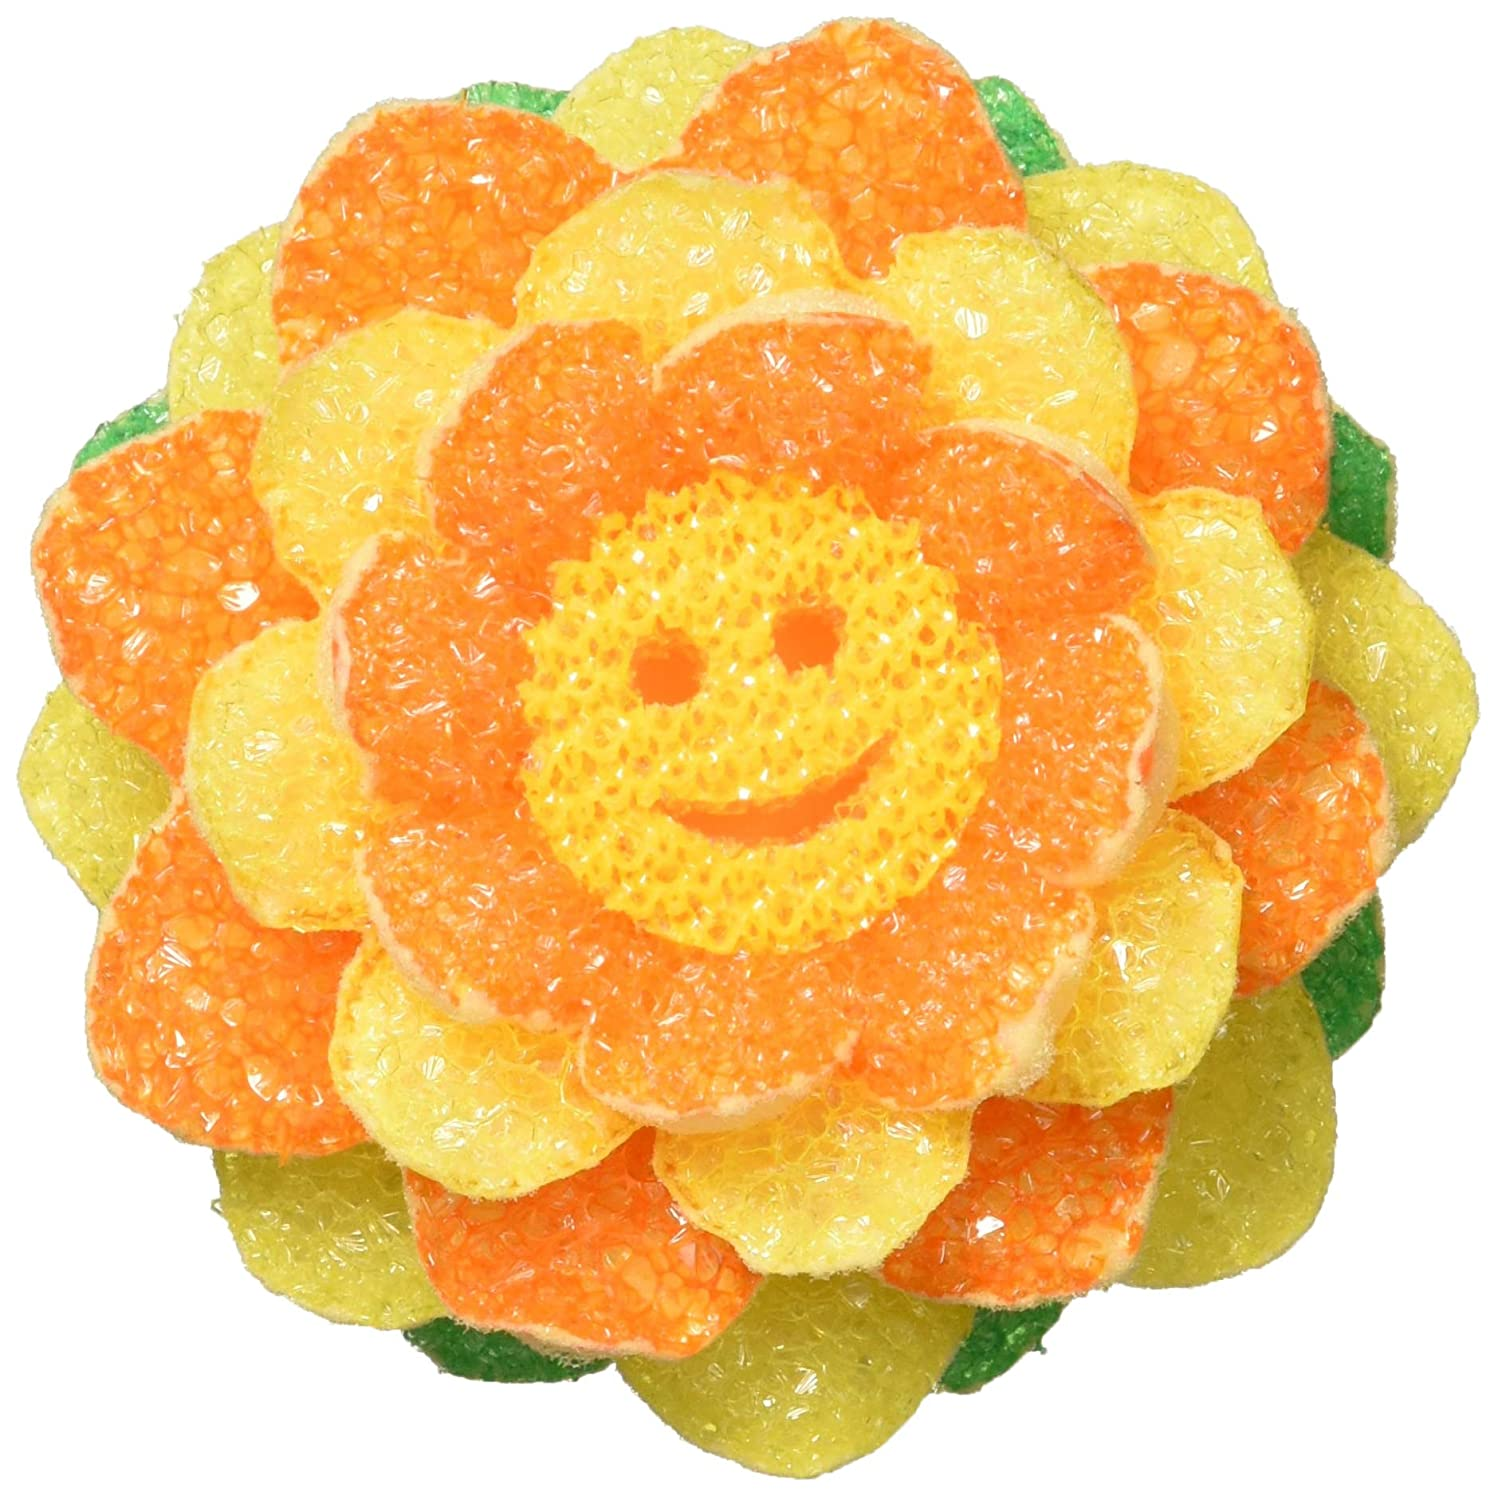 Scrub Daddy DSYHD8CT Daisy Head Replc Sponge, 1, The